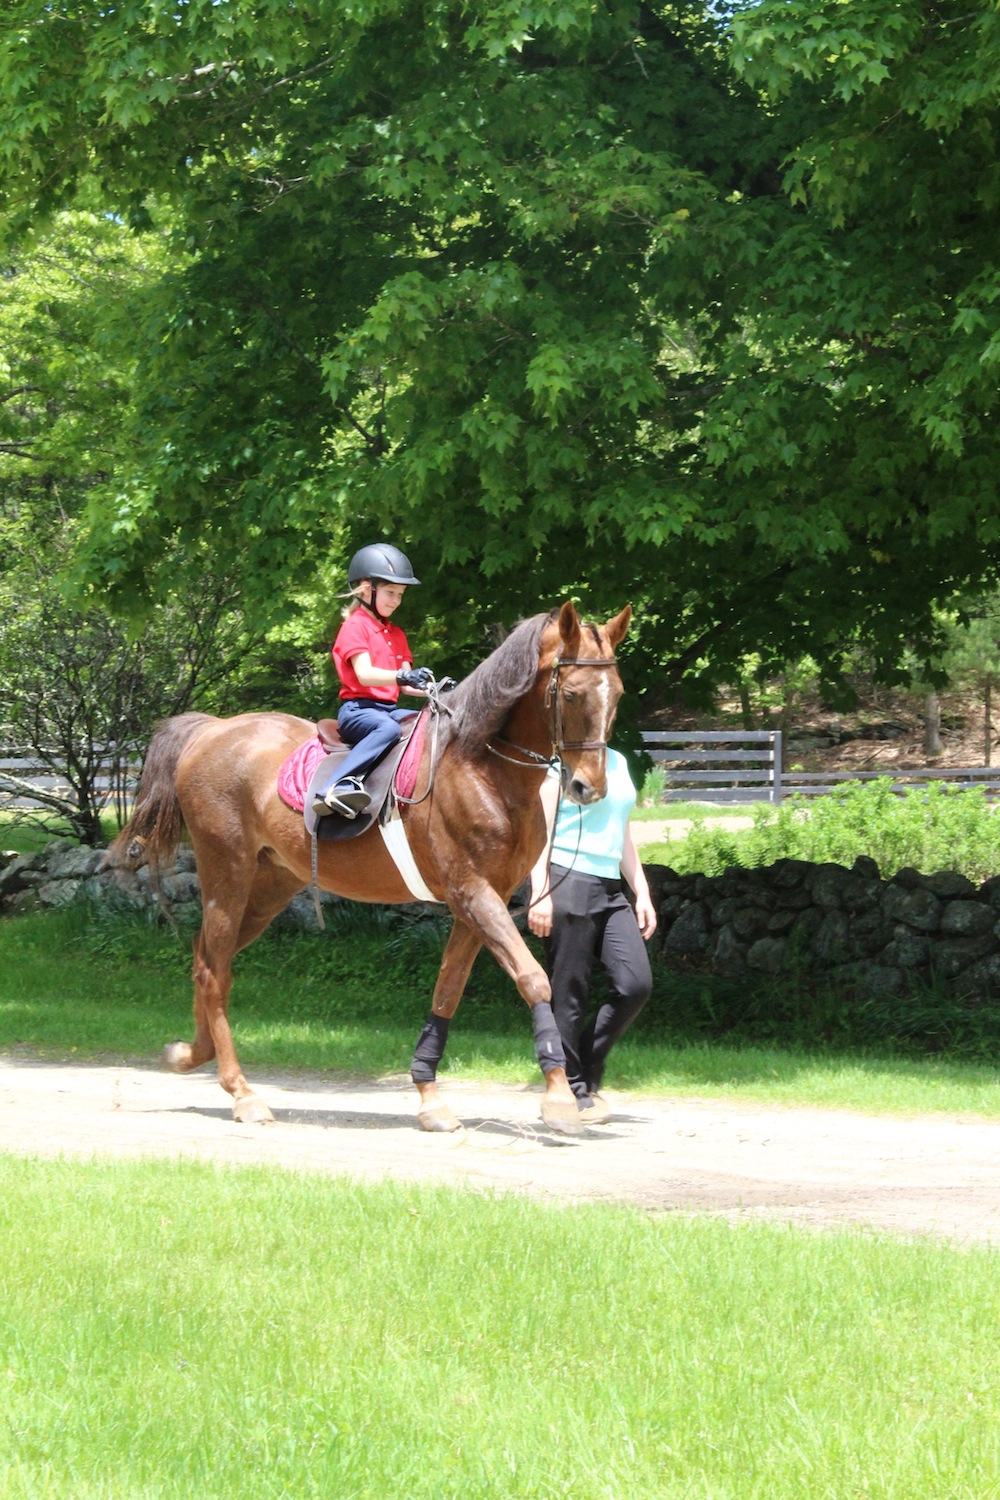 The summer months provide the perfect weather for working horses outside.